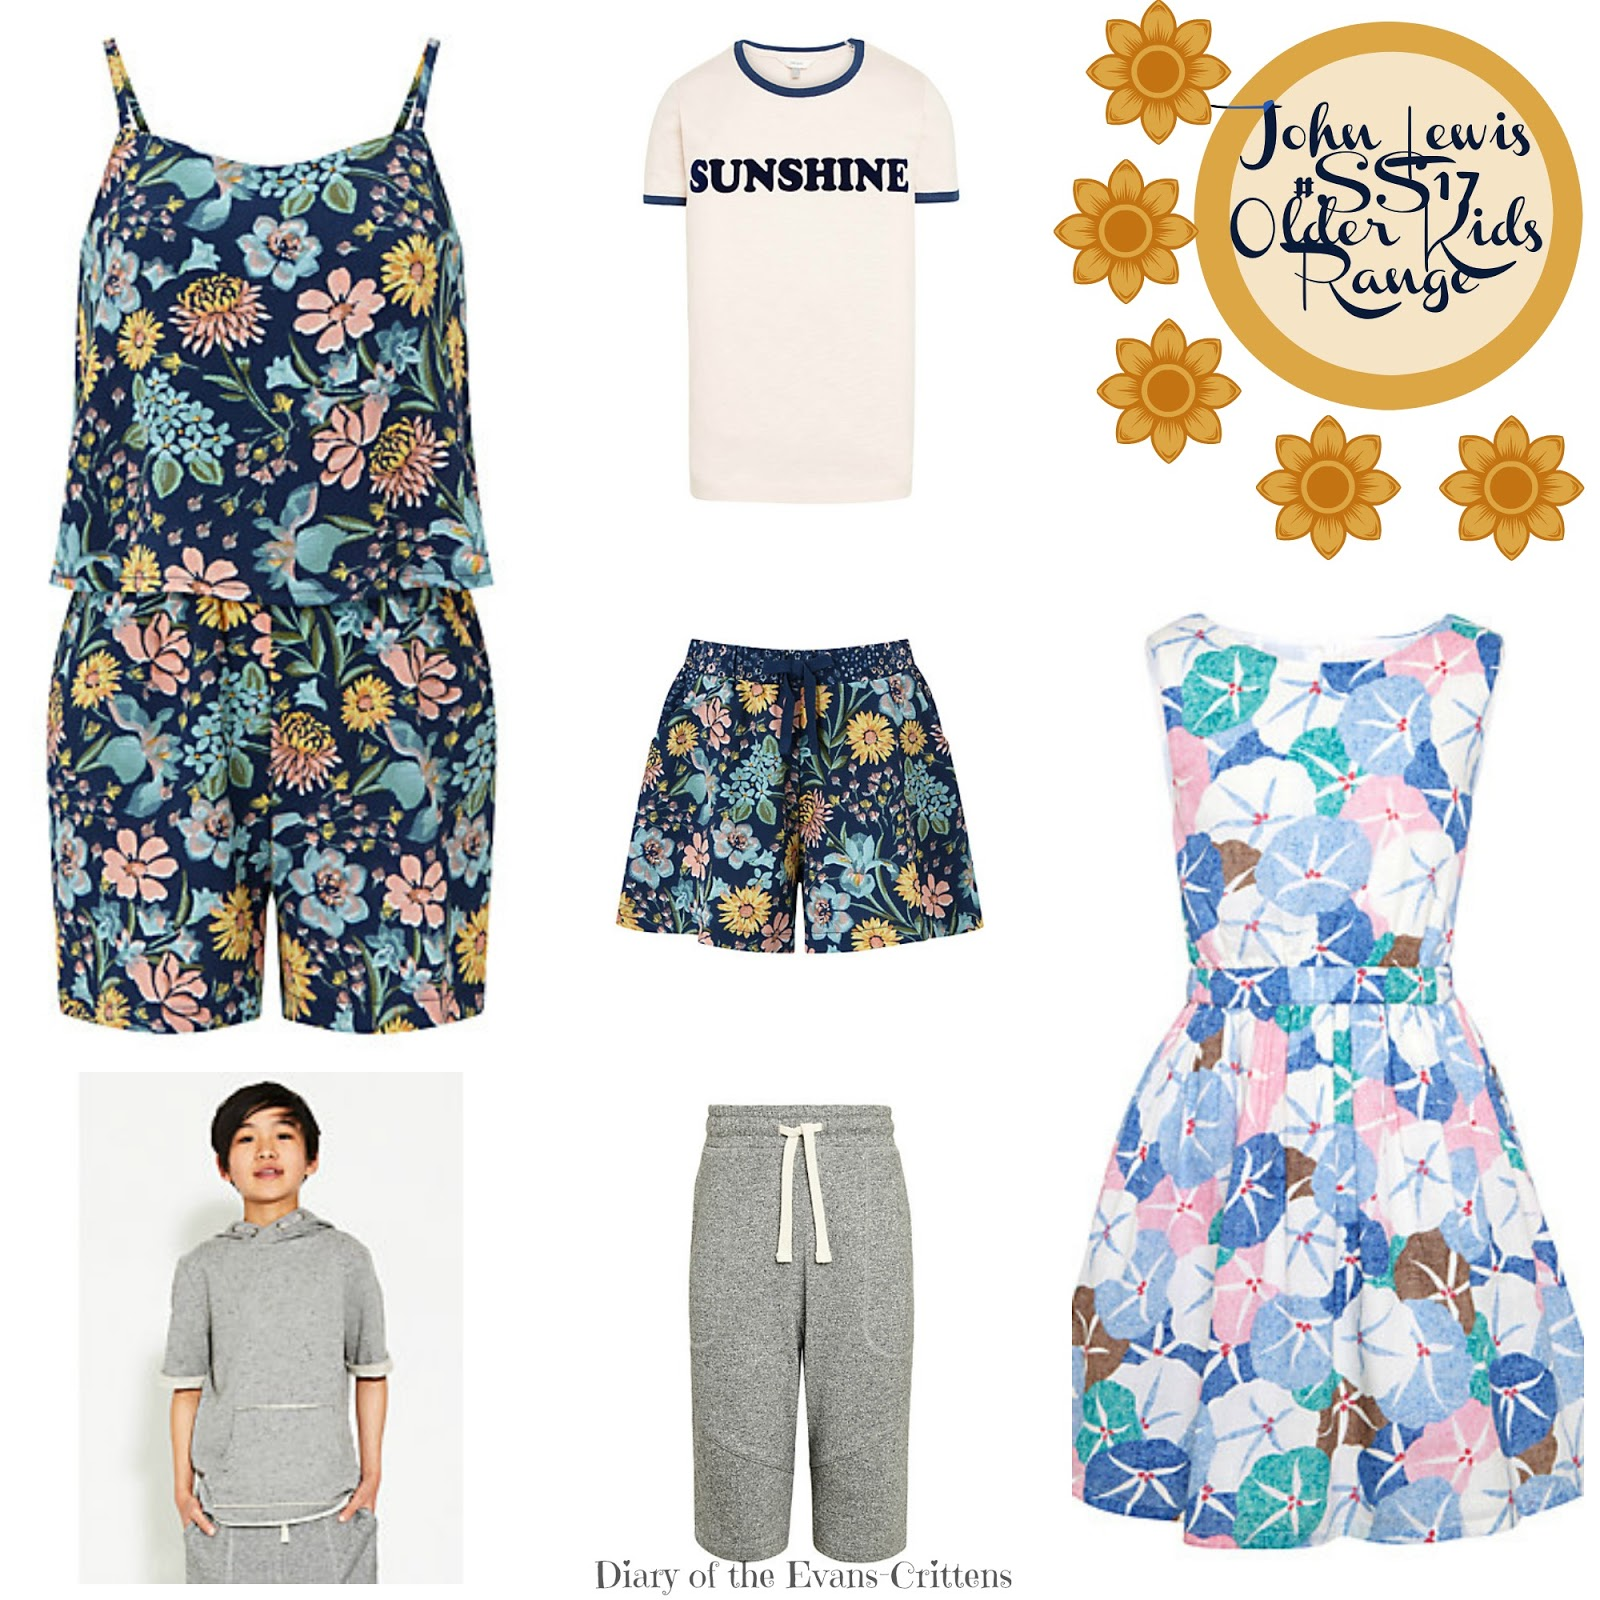 , Style:  The #SS17 John Lewis Collection for Teens & Older Boys & Girls